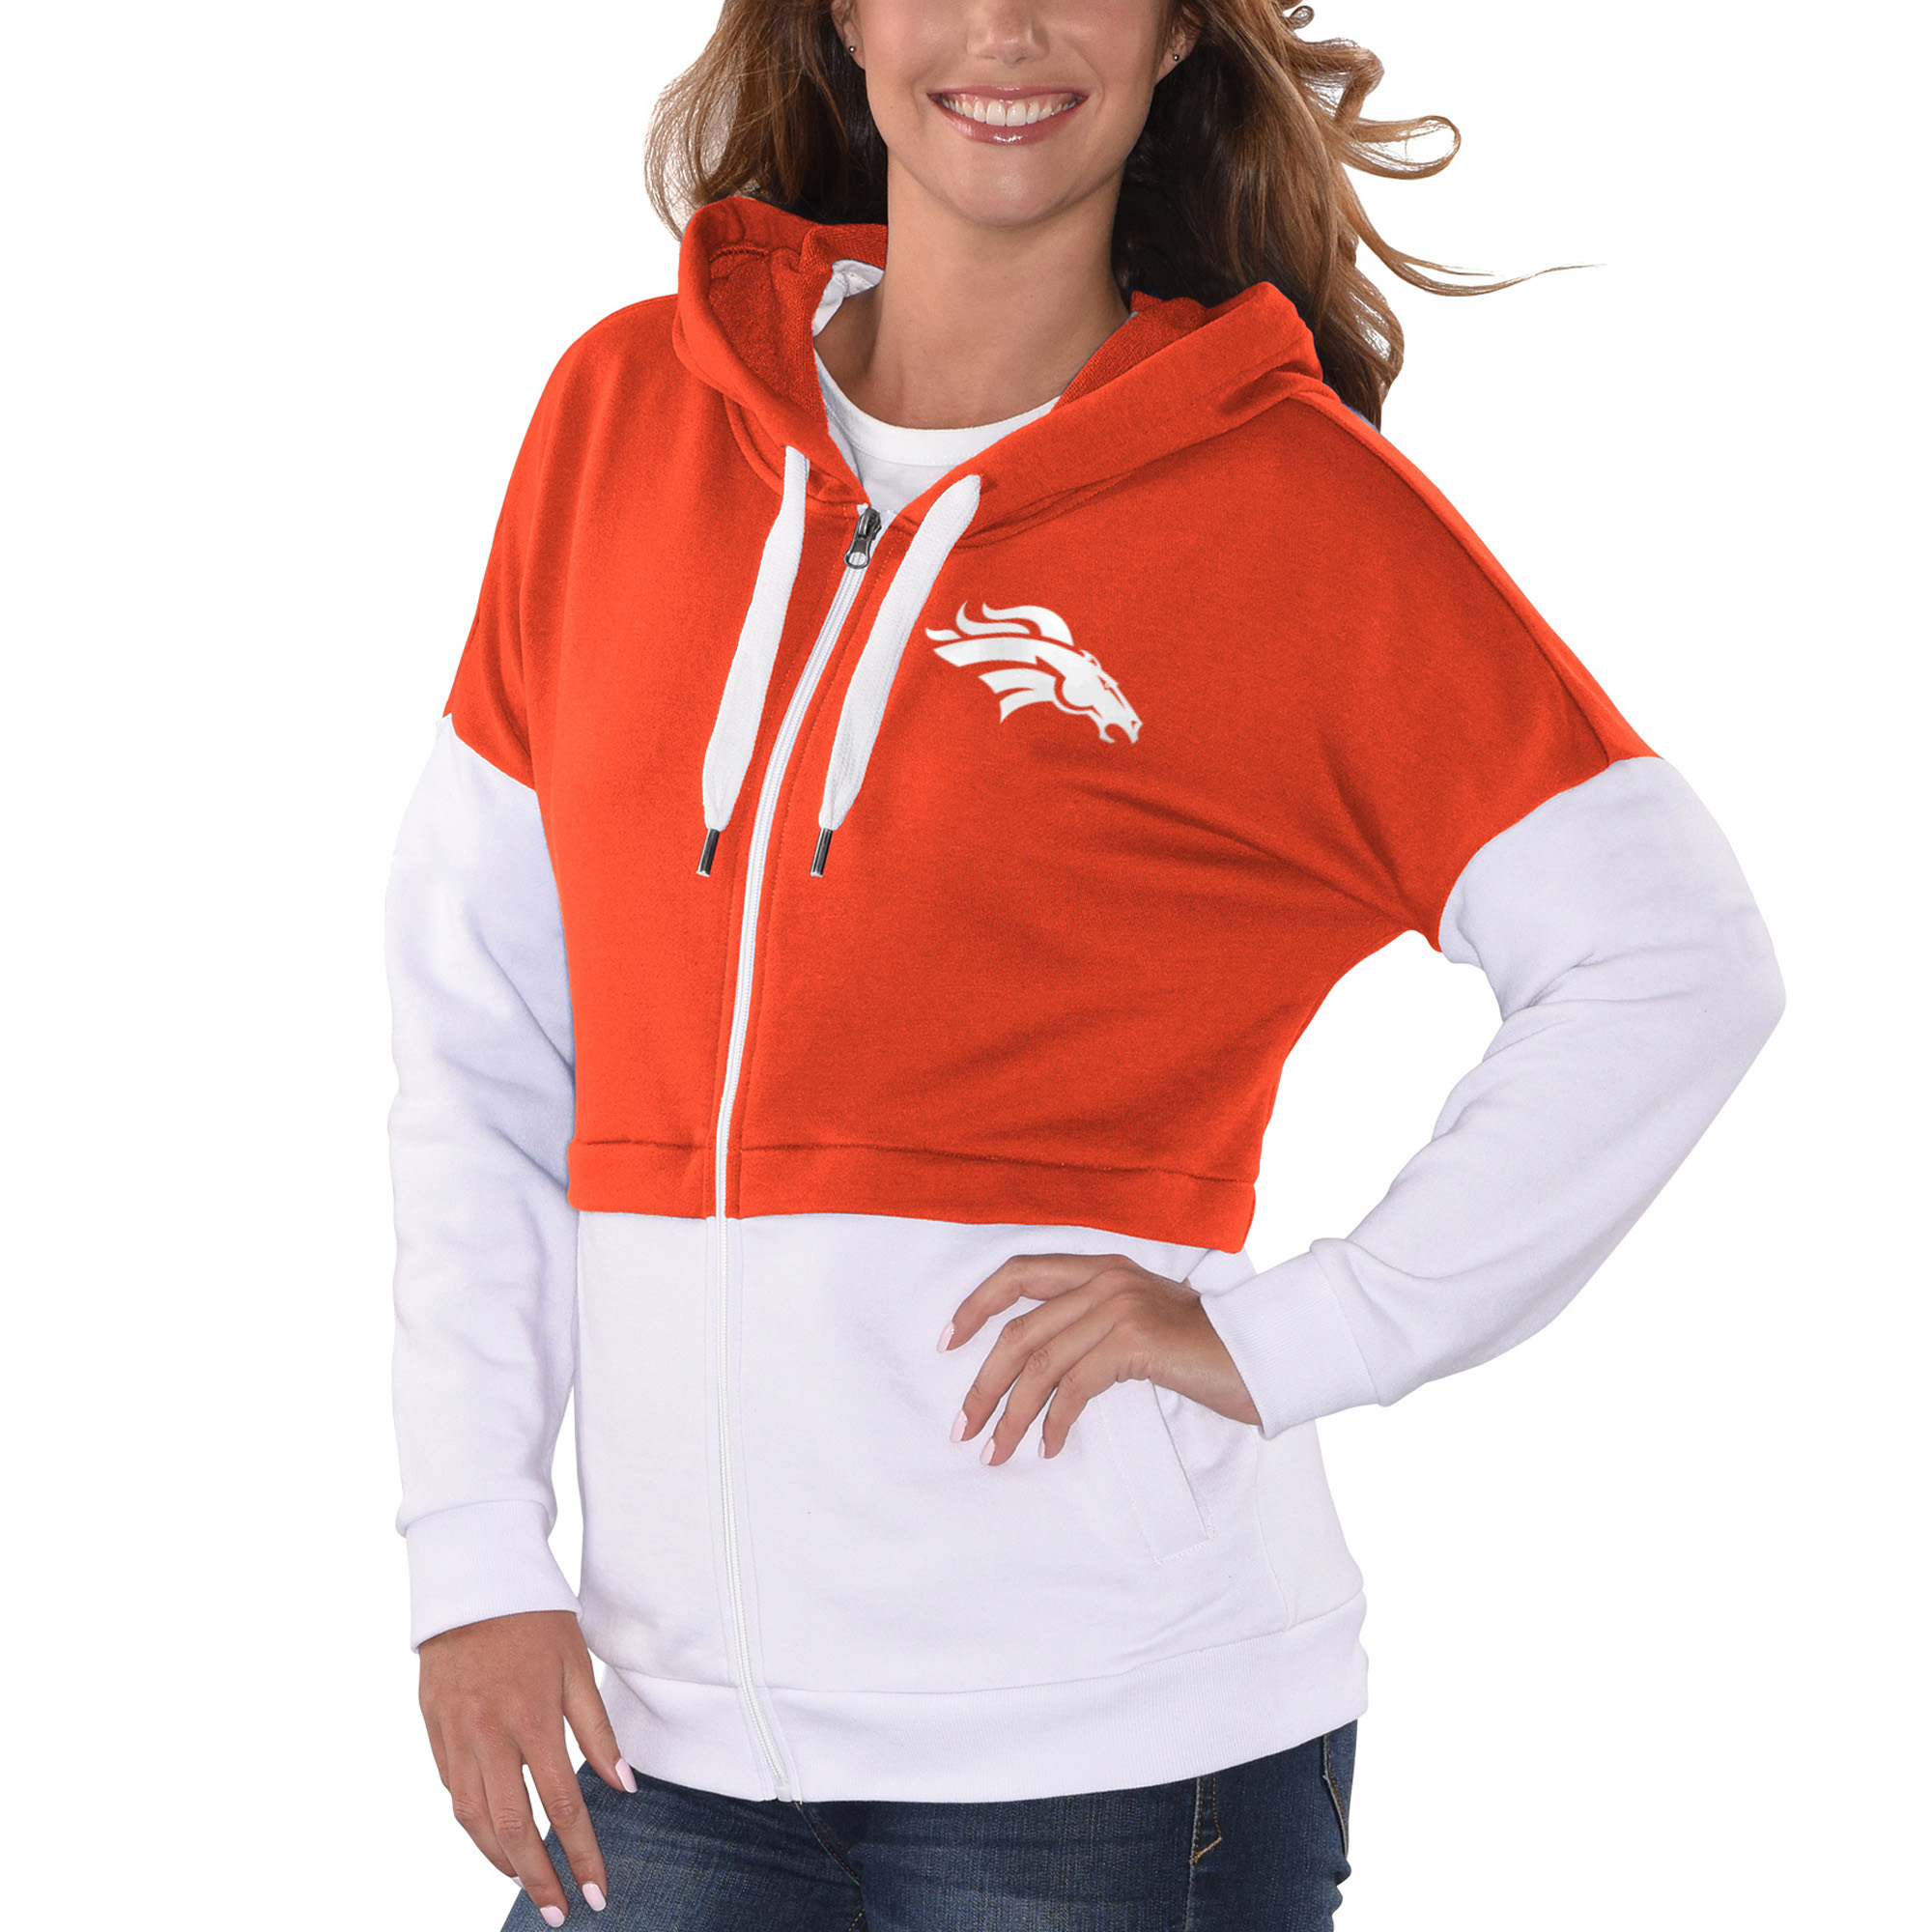 Denver Broncos G-III 4Her by Carl Banks Women's Game Changer Full-Zip Hoodie - Orange/White